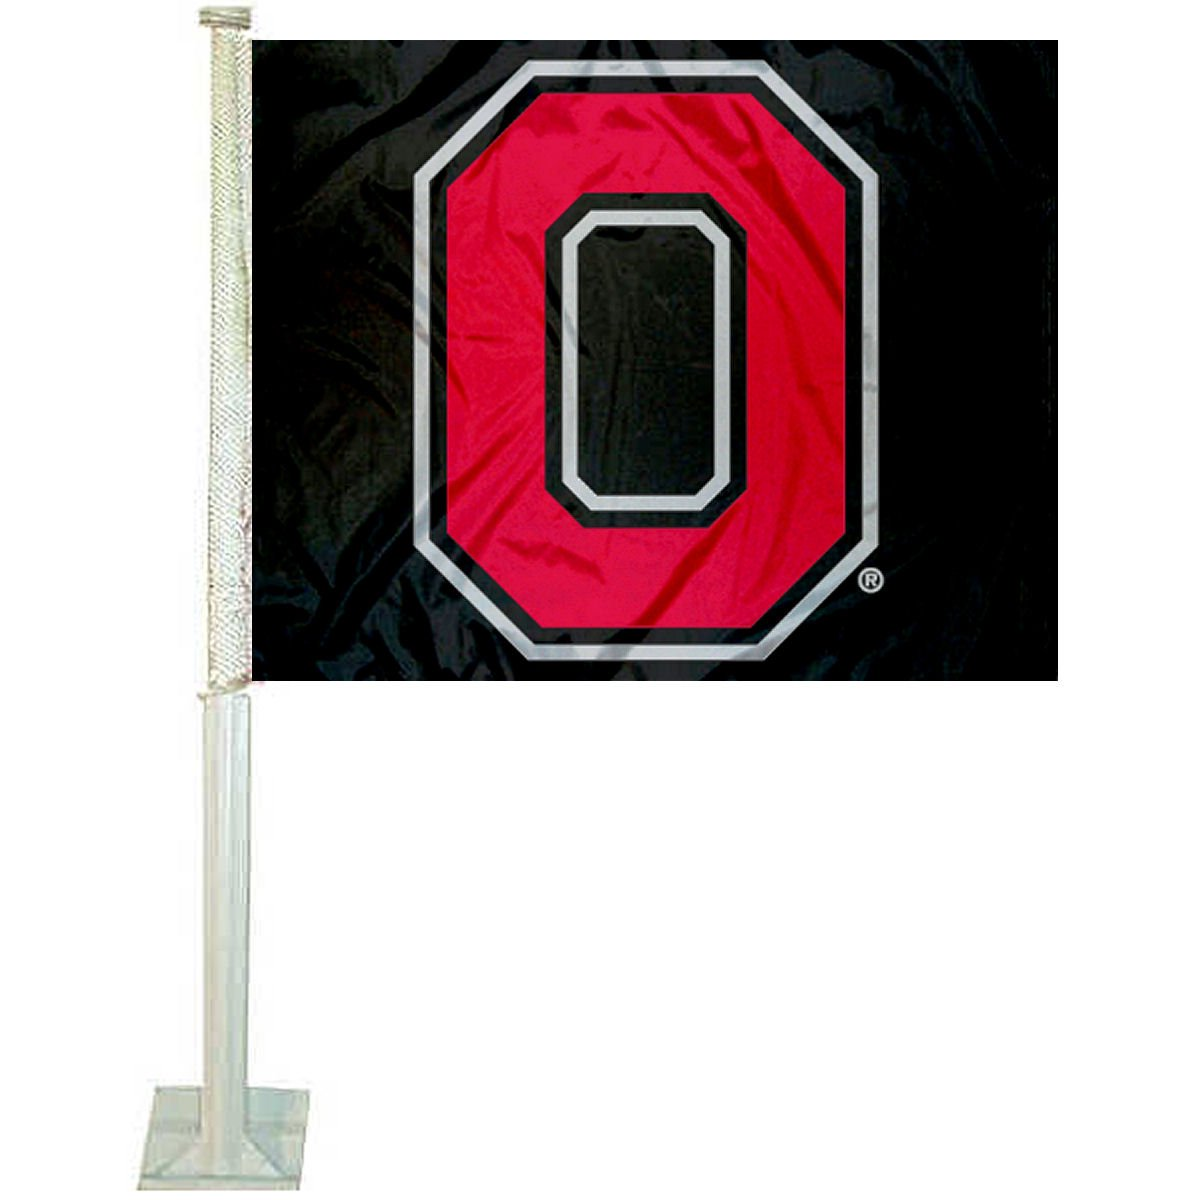 OSU Buckeyes Block O Car and Auto Flag College Flags and Banners Co.